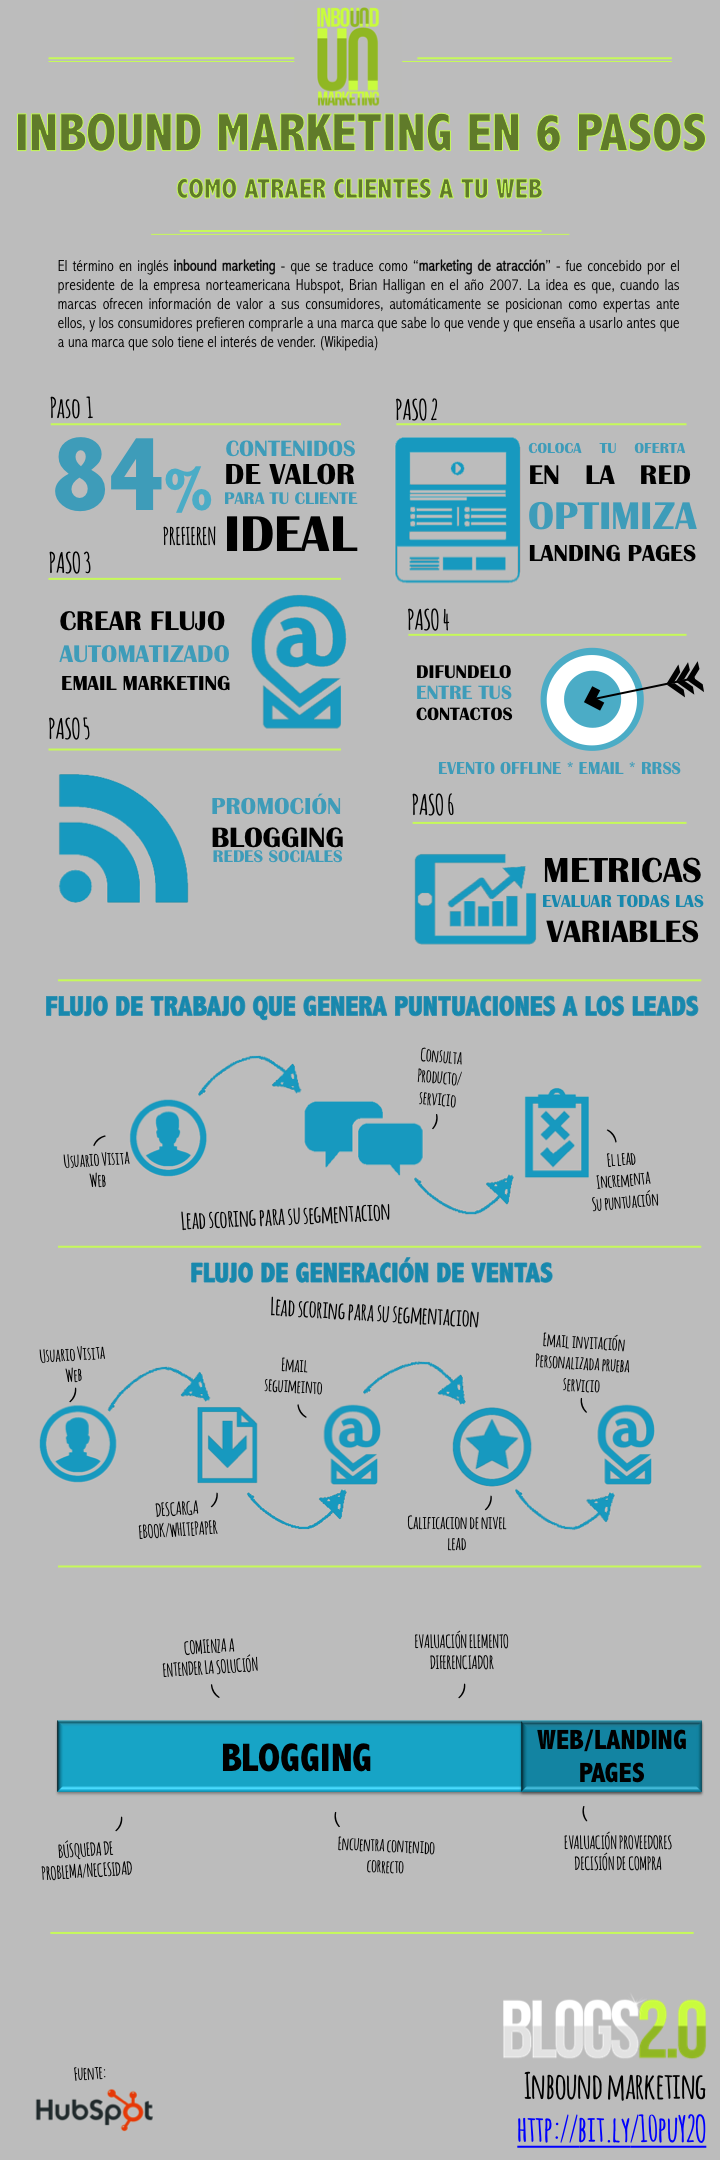 Inbound Marketing en 6 pasos